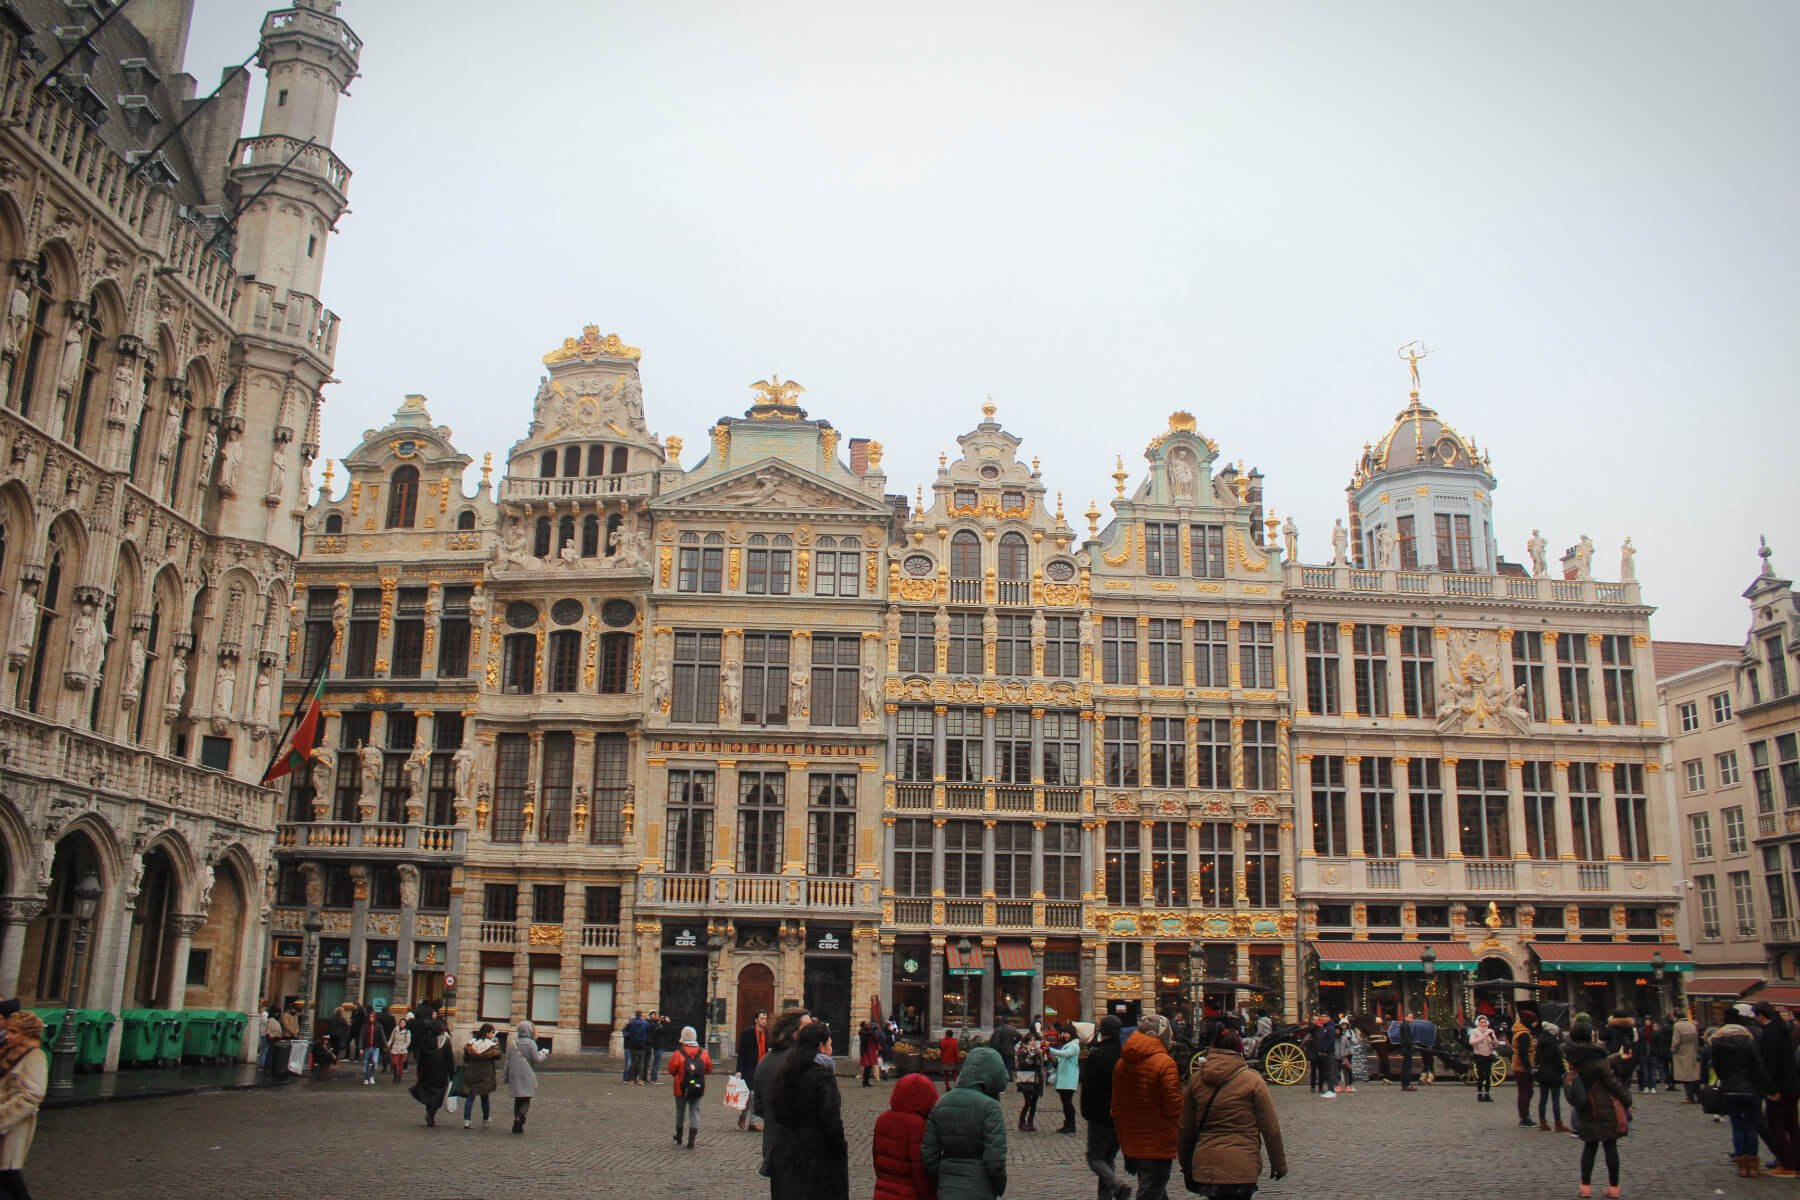 The stunning Grand Place in Brussels, Belgium, the most beautiful plaza in Europe! Note the multiple styles of architecture - Gothic in the left, gold studded baroque in the center. The Grand Place is home to several different styles of architecture.